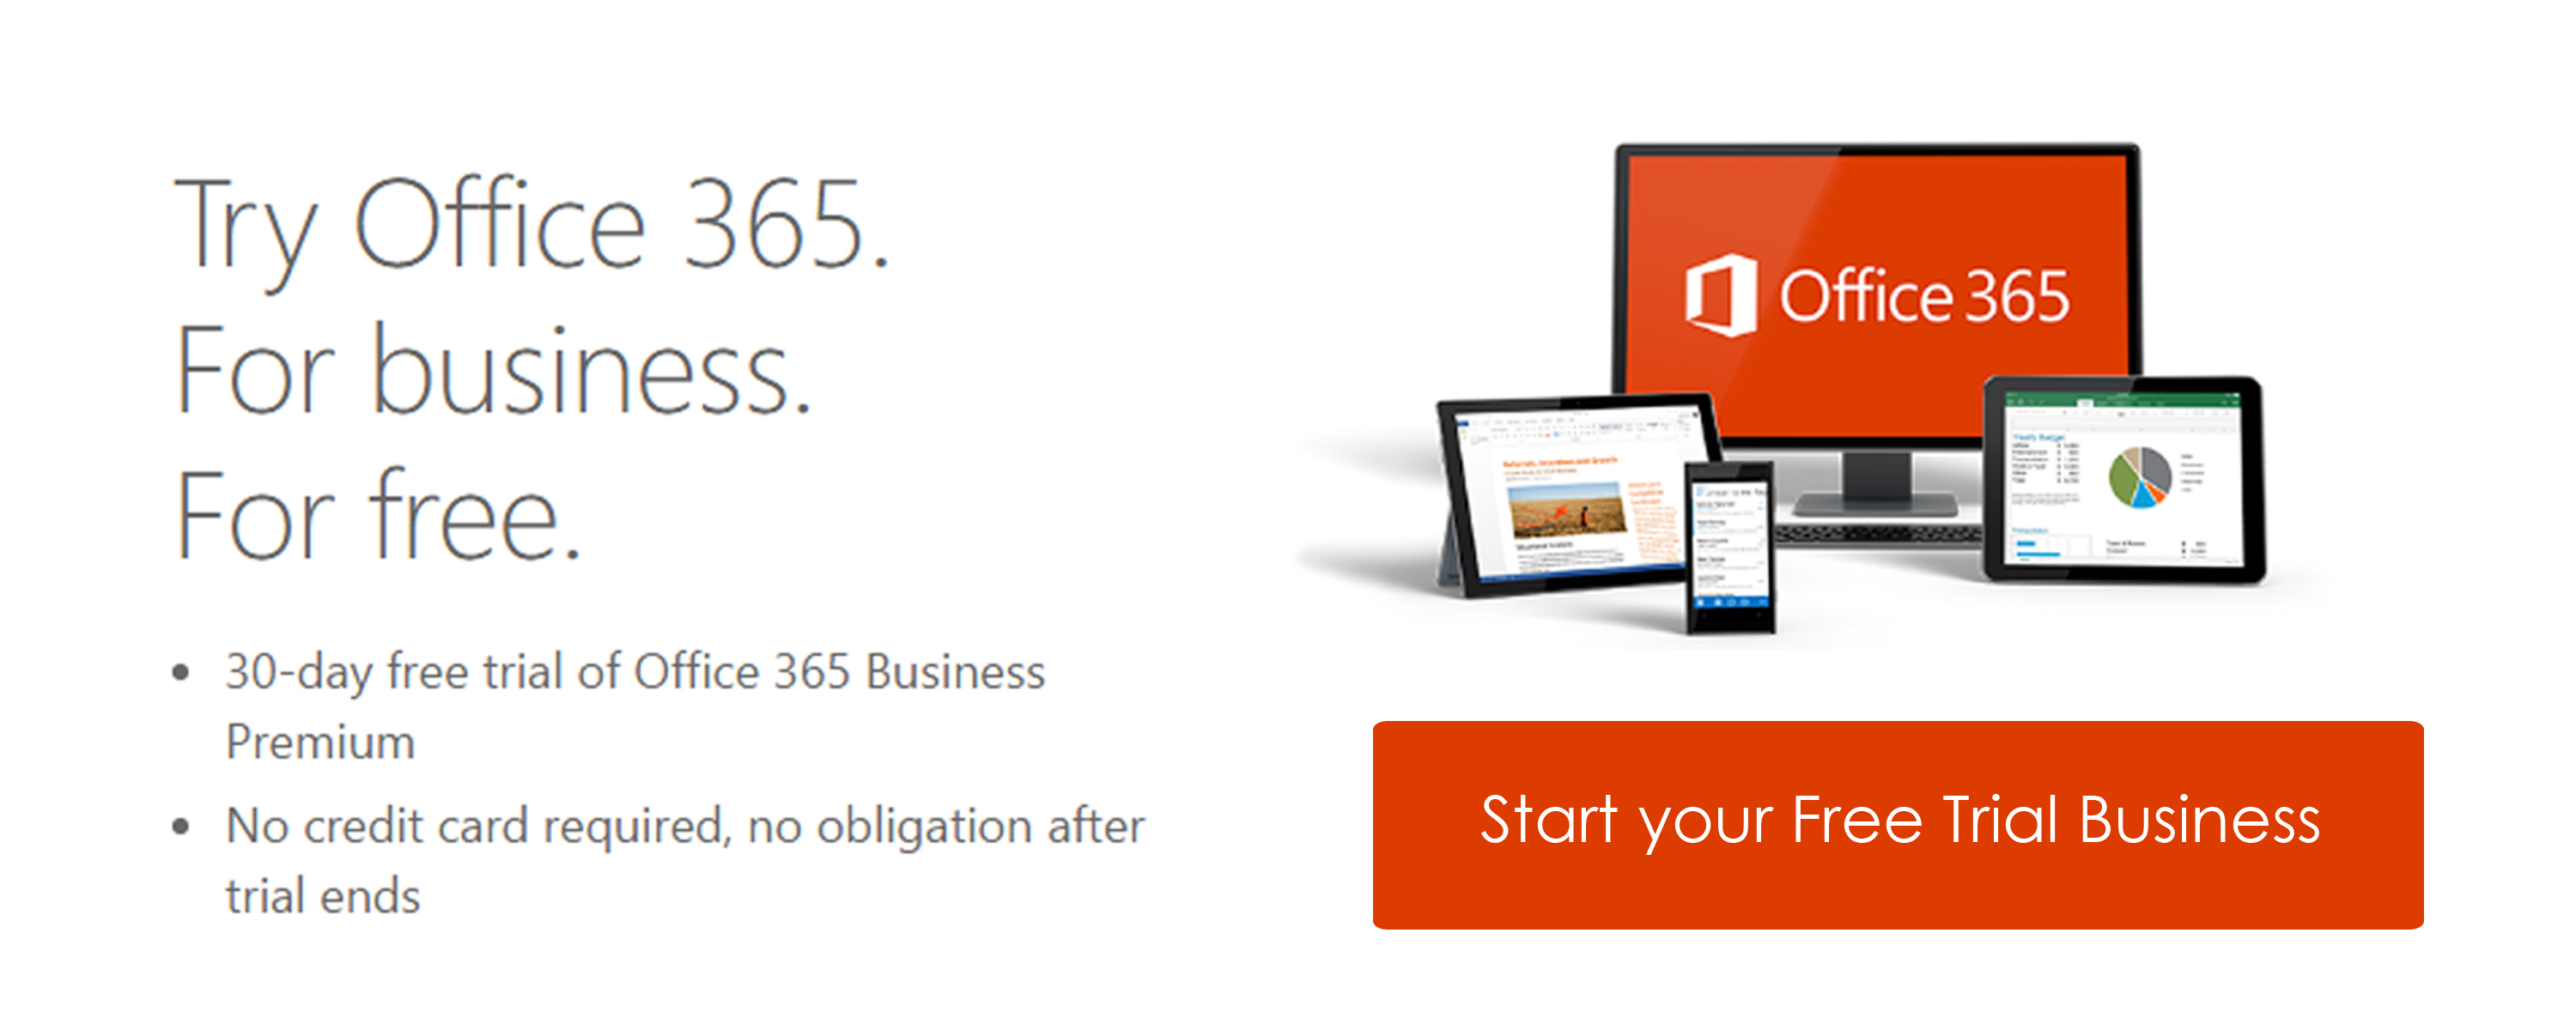 Office 365 - Microgenesis Business Systems